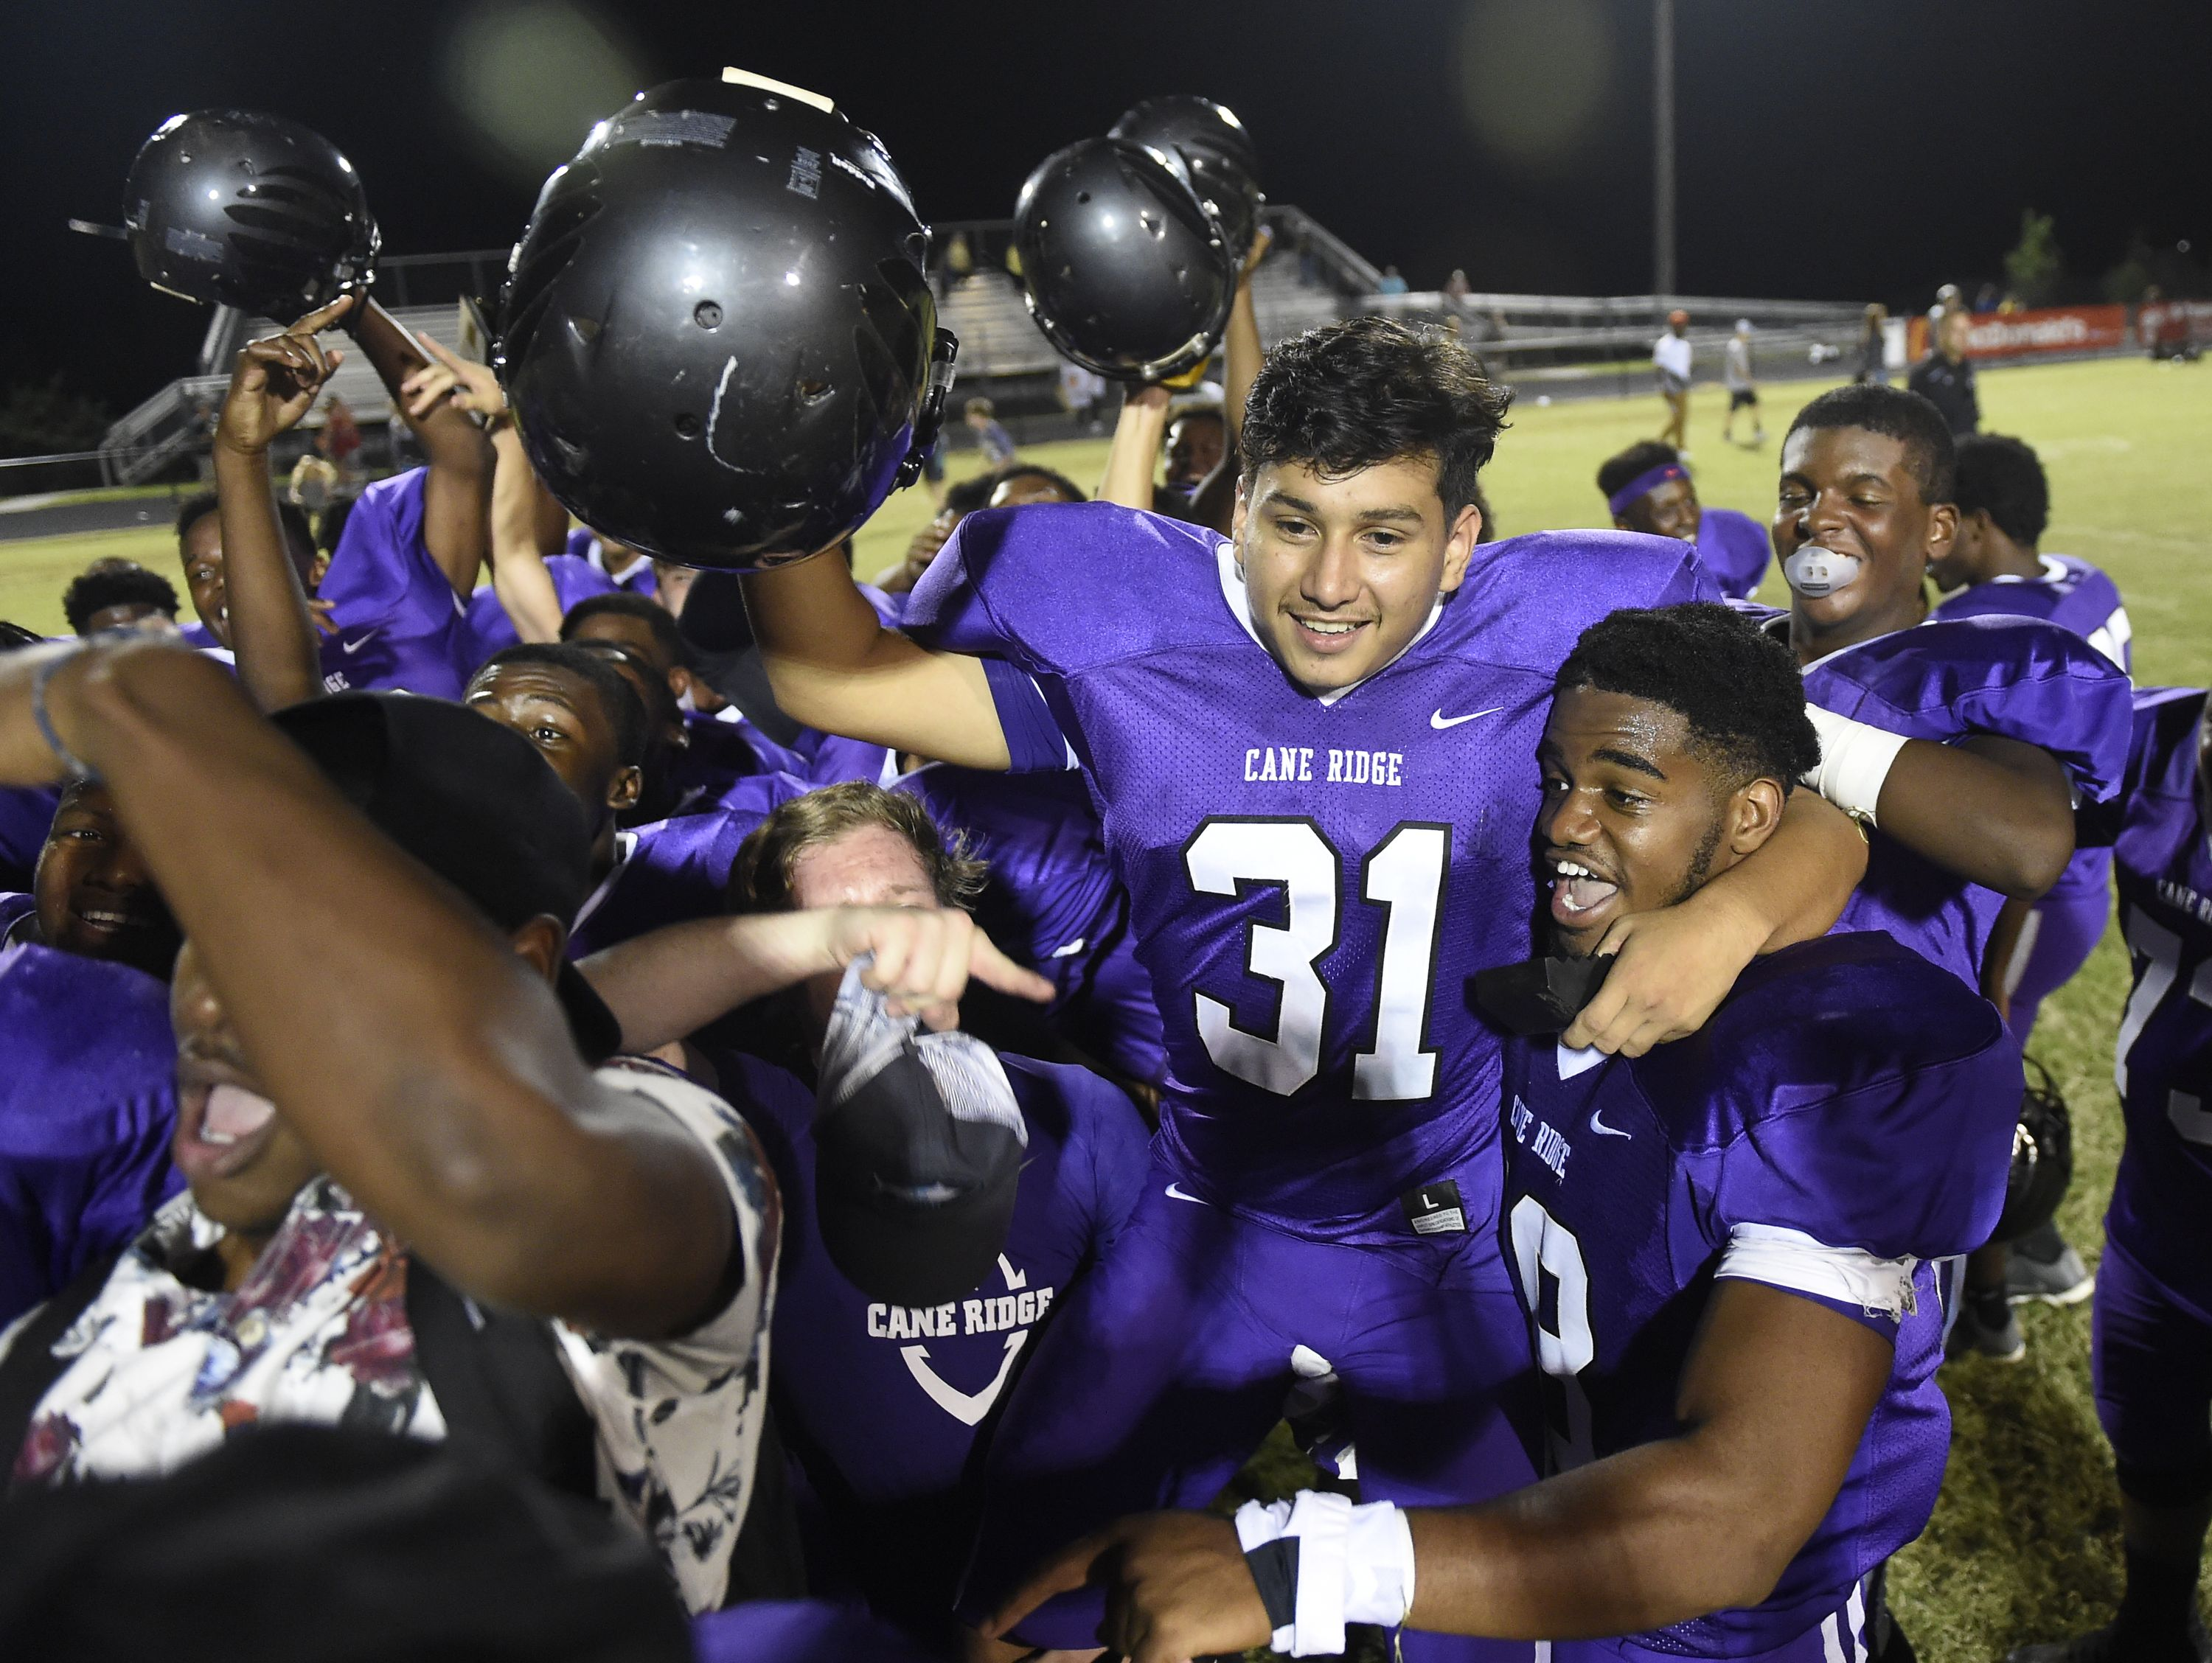 Cane Ridge kicker Carlos Velasquez (31) is lifted onto the shoulders of his teammates after he kicked the game-winning extra point in OT. Cane Ridge kicker Carlos Velasquez, 31, is lifted onto the shoulders of his teammates after he kicked the game winner to top Hendersonville 47-46 in overtime on Friday, September 2, 2016.